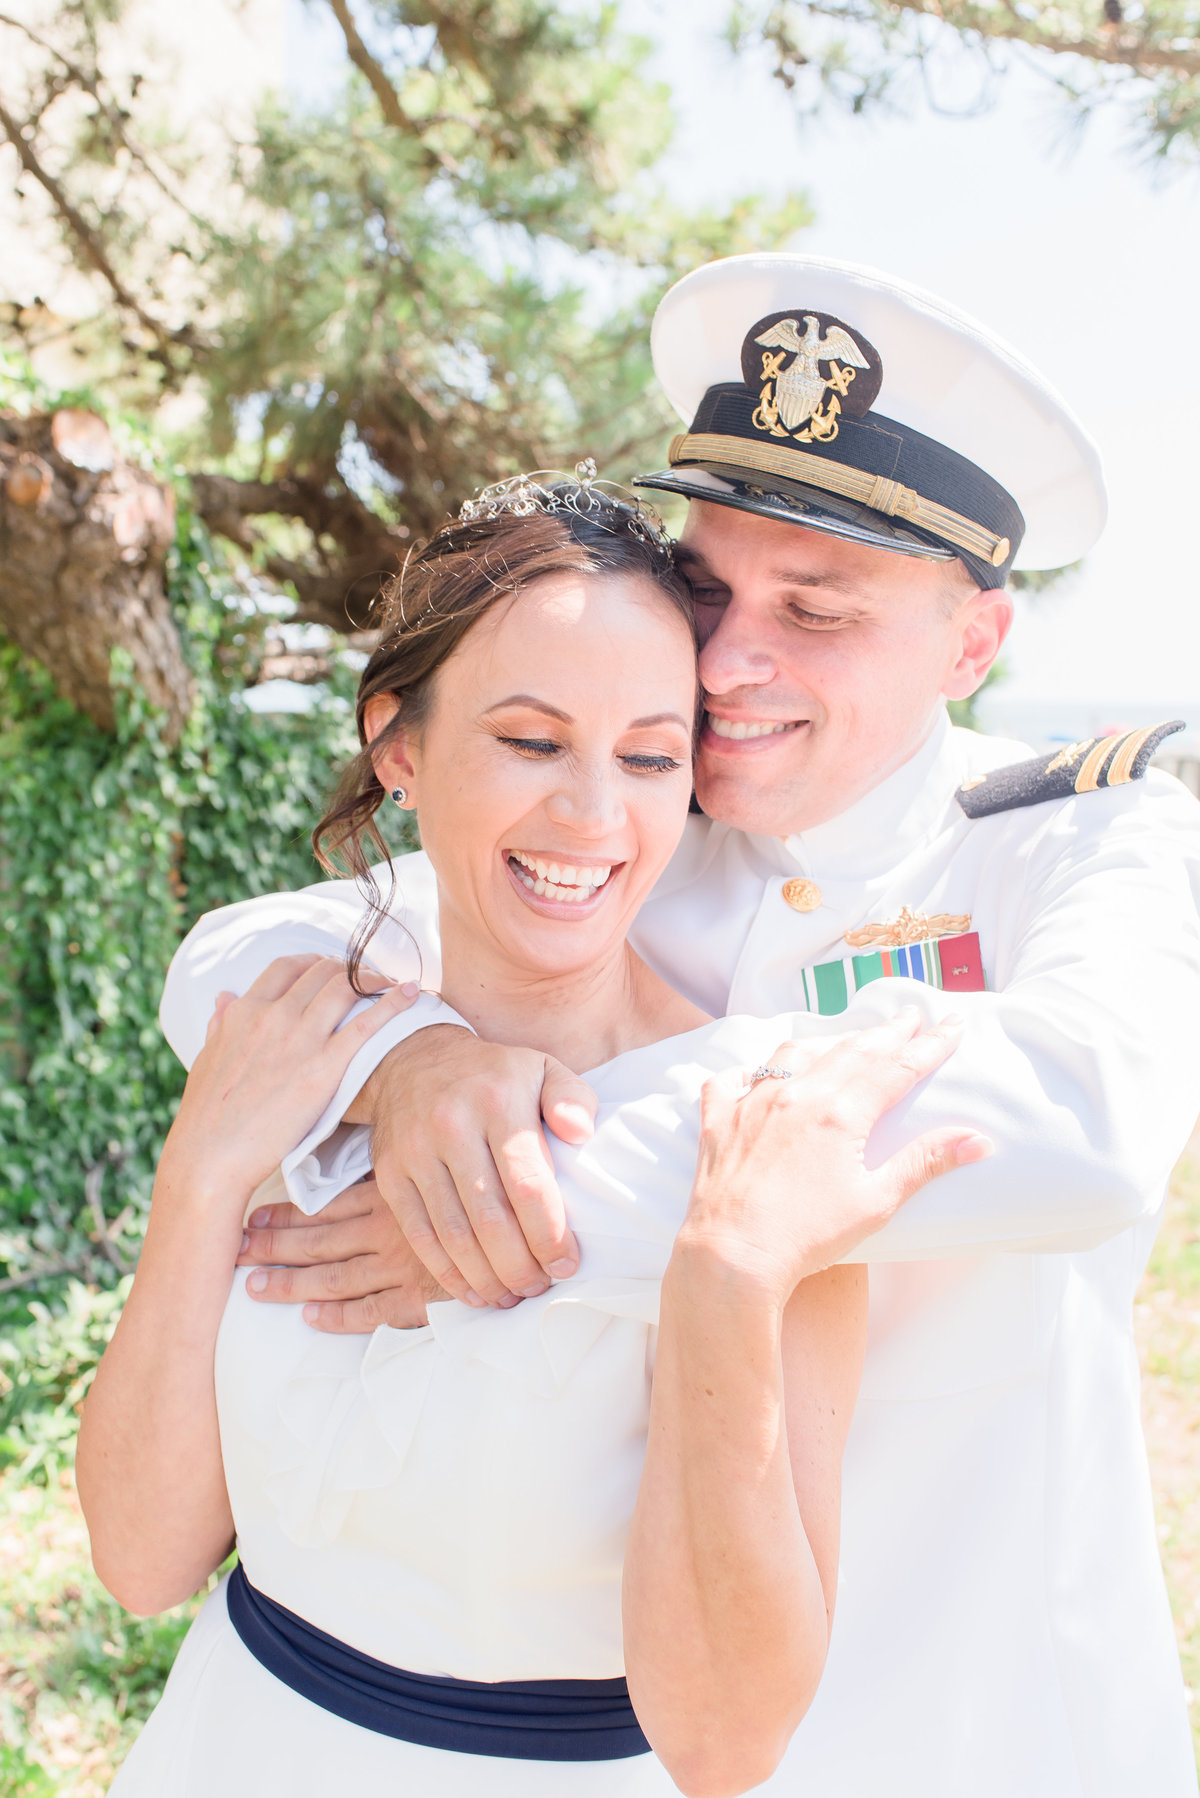 Virginia Wedding Photographer, groom in military uniform wrapping his arms around bride